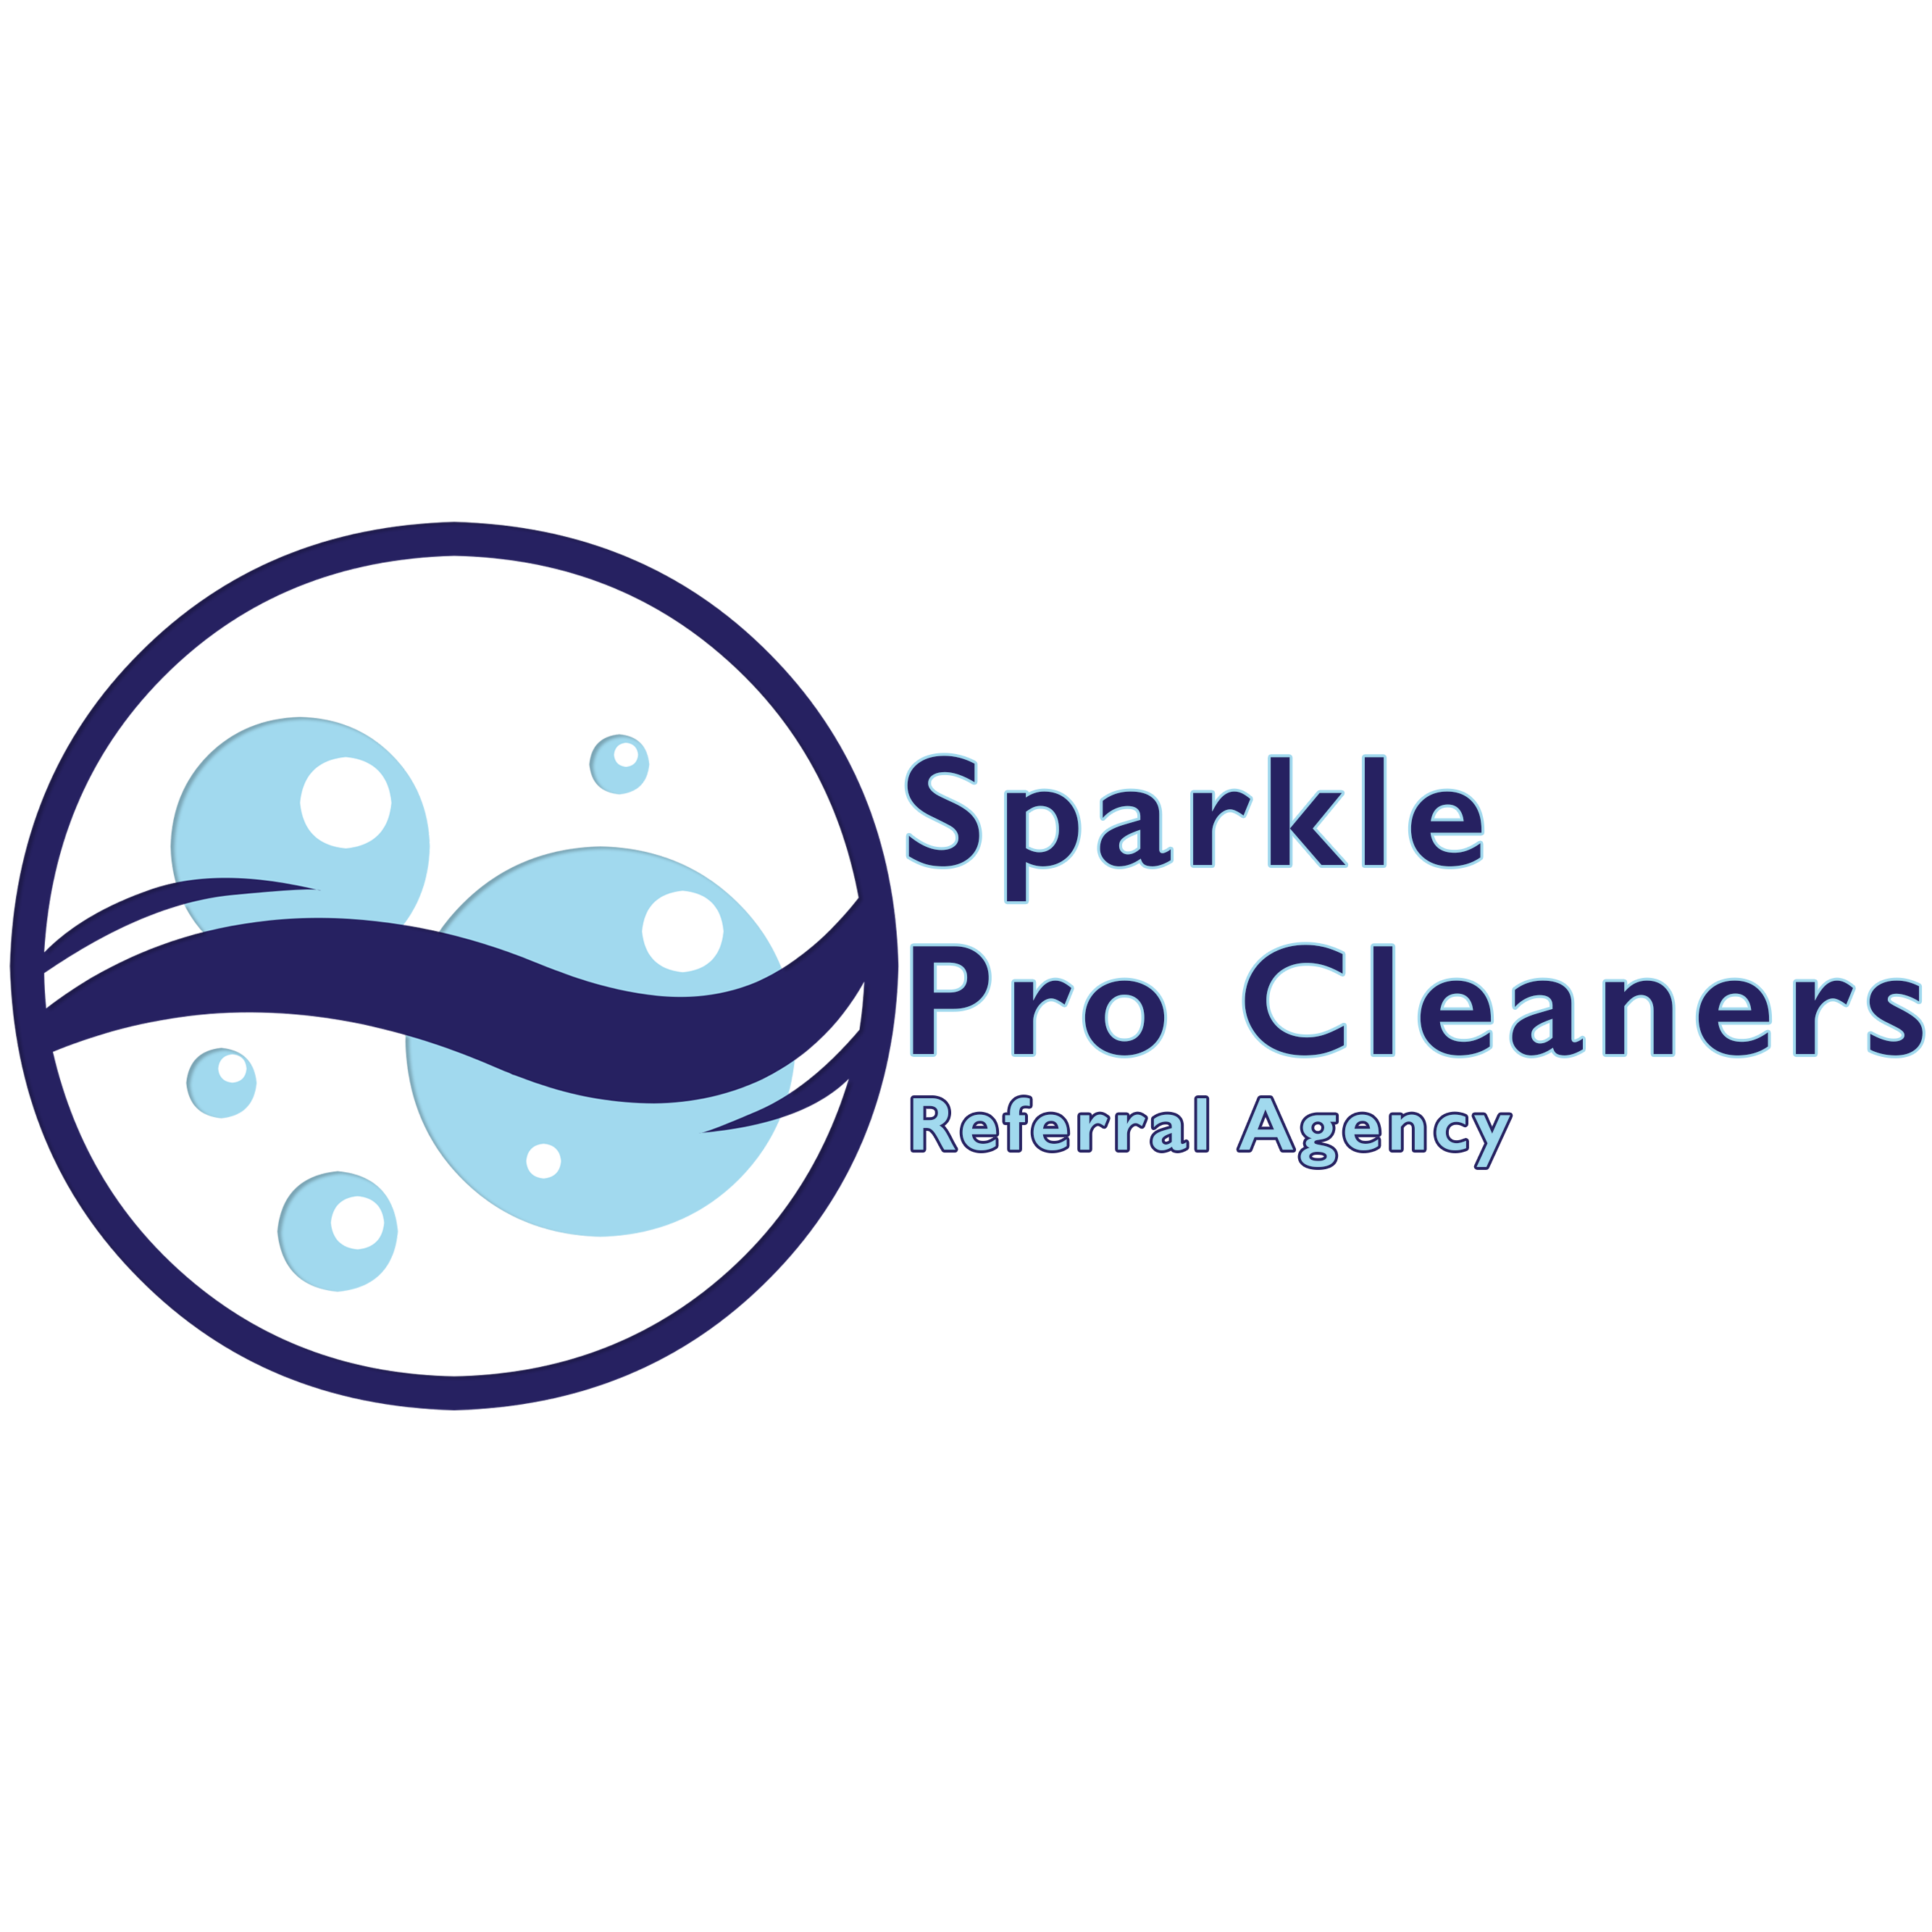 Sparkle Pro Cleaners